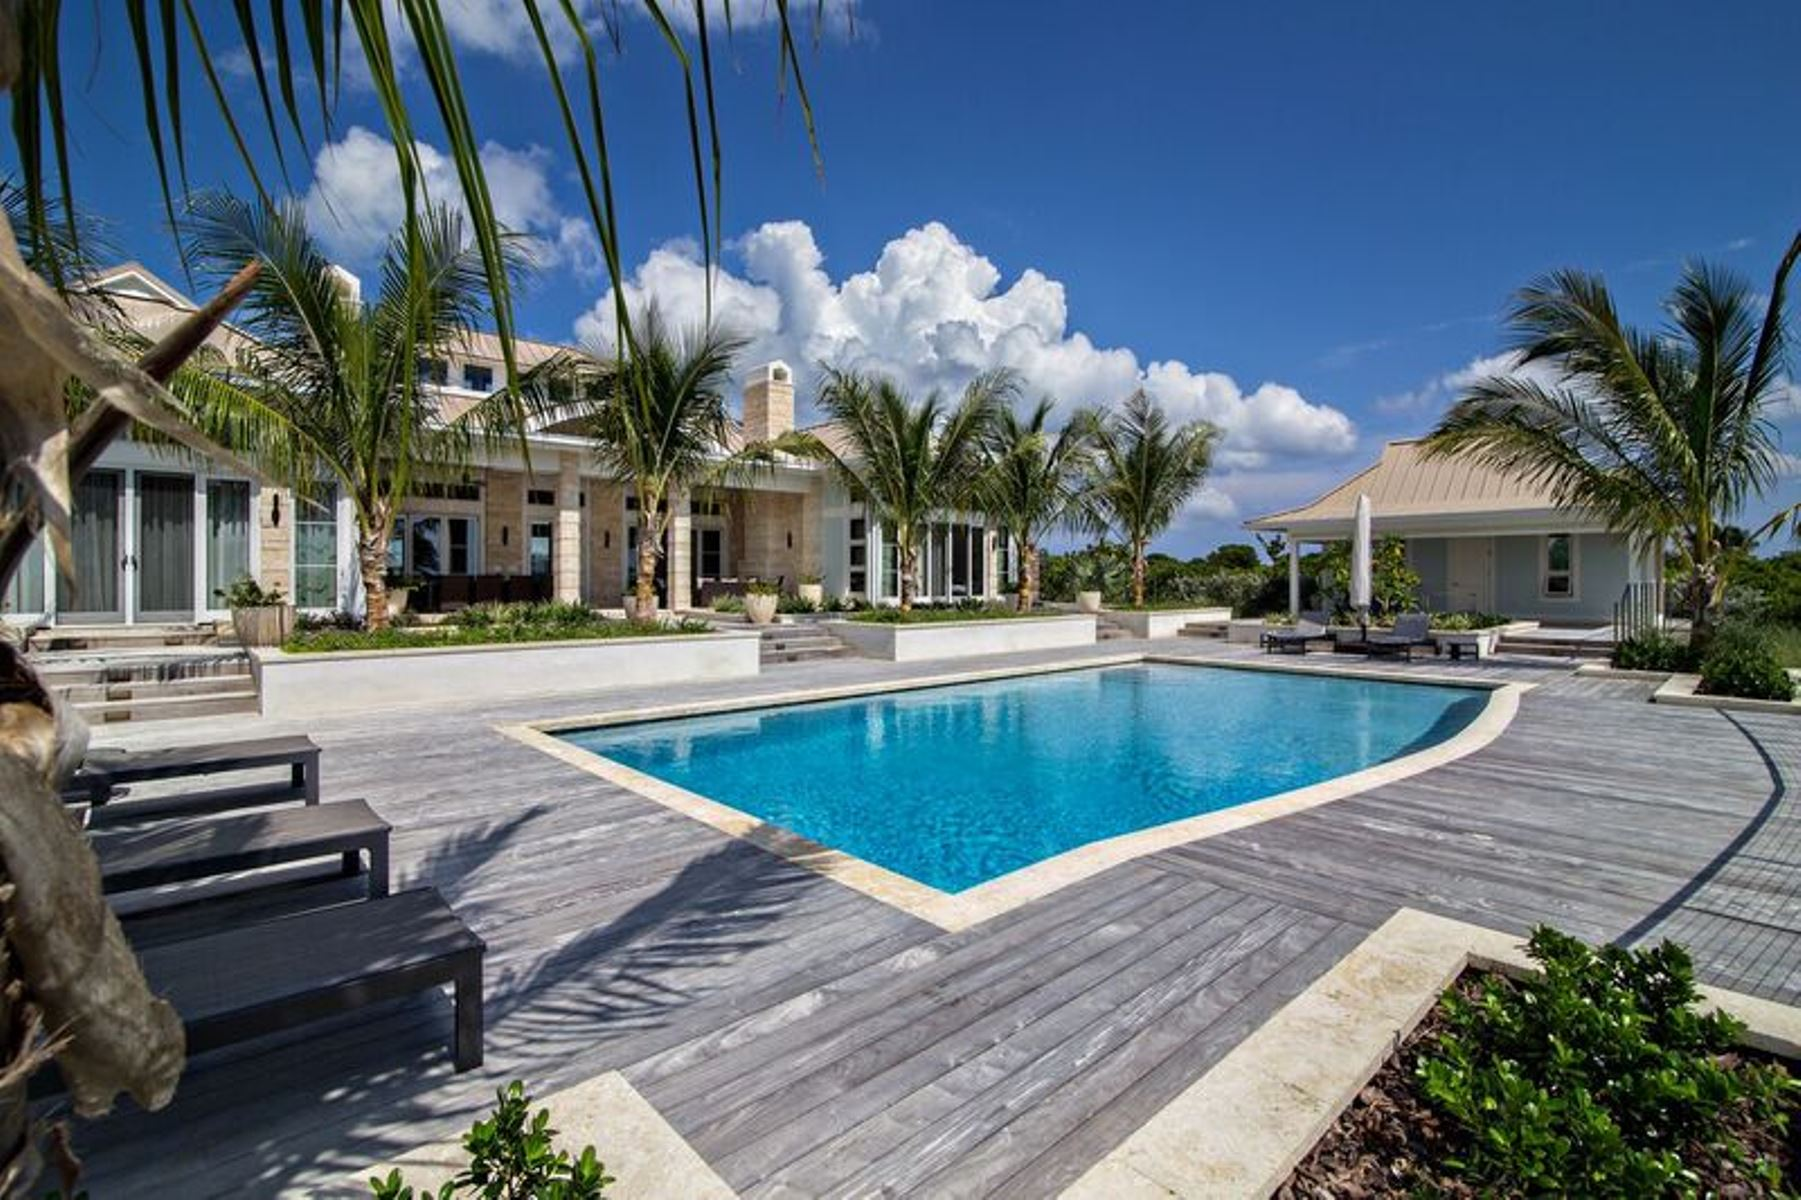 Maison unifamiliale pour l Vente à Enchanting Home Located At The Abaco Club on Winding Bay (MLS 27799) Abaco, Bahamas